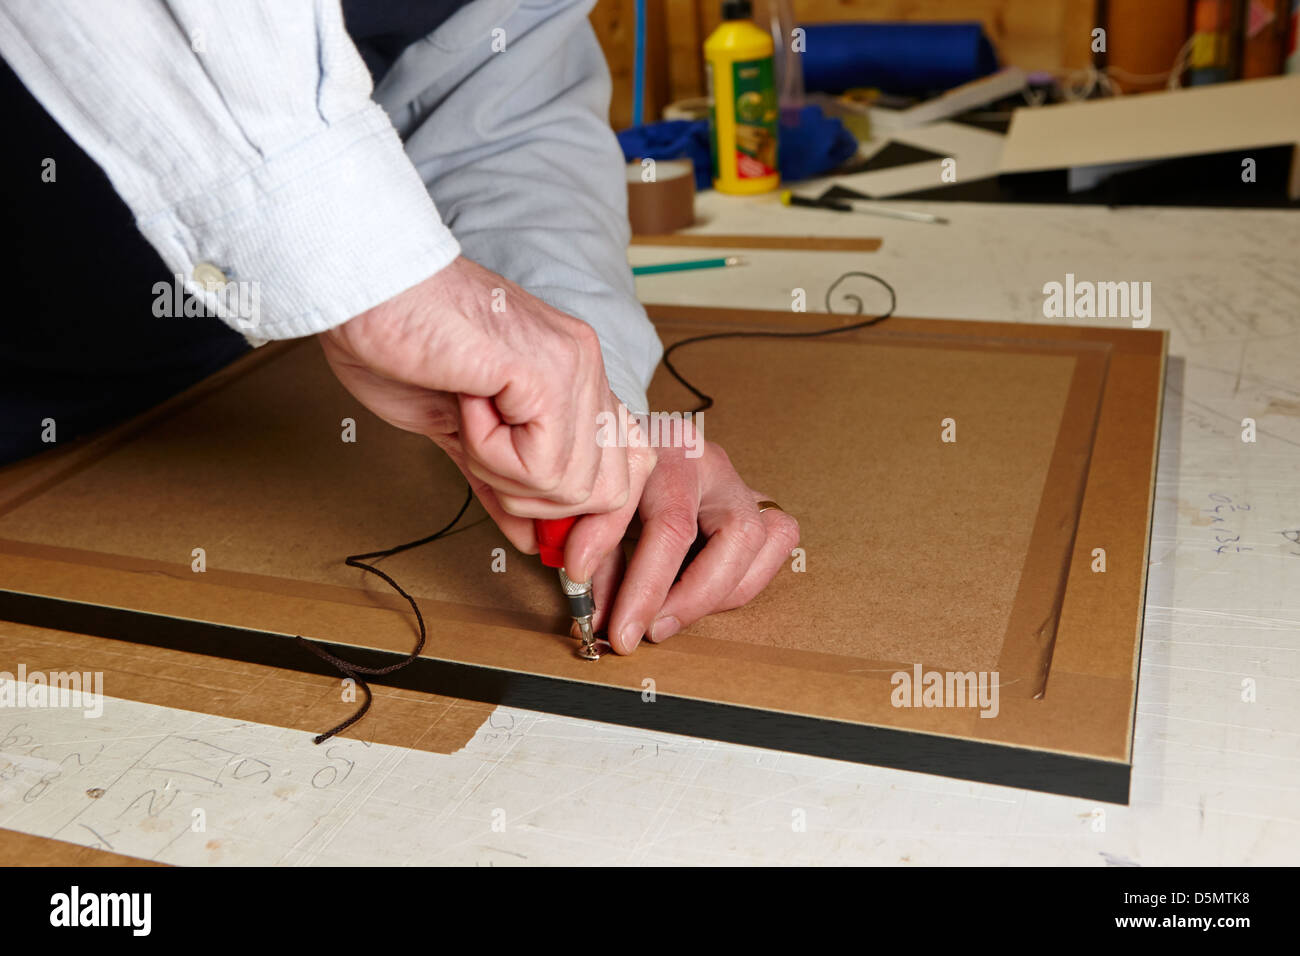 Framing A Picture Stockfotos & Framing A Picture Bilder - Alamy